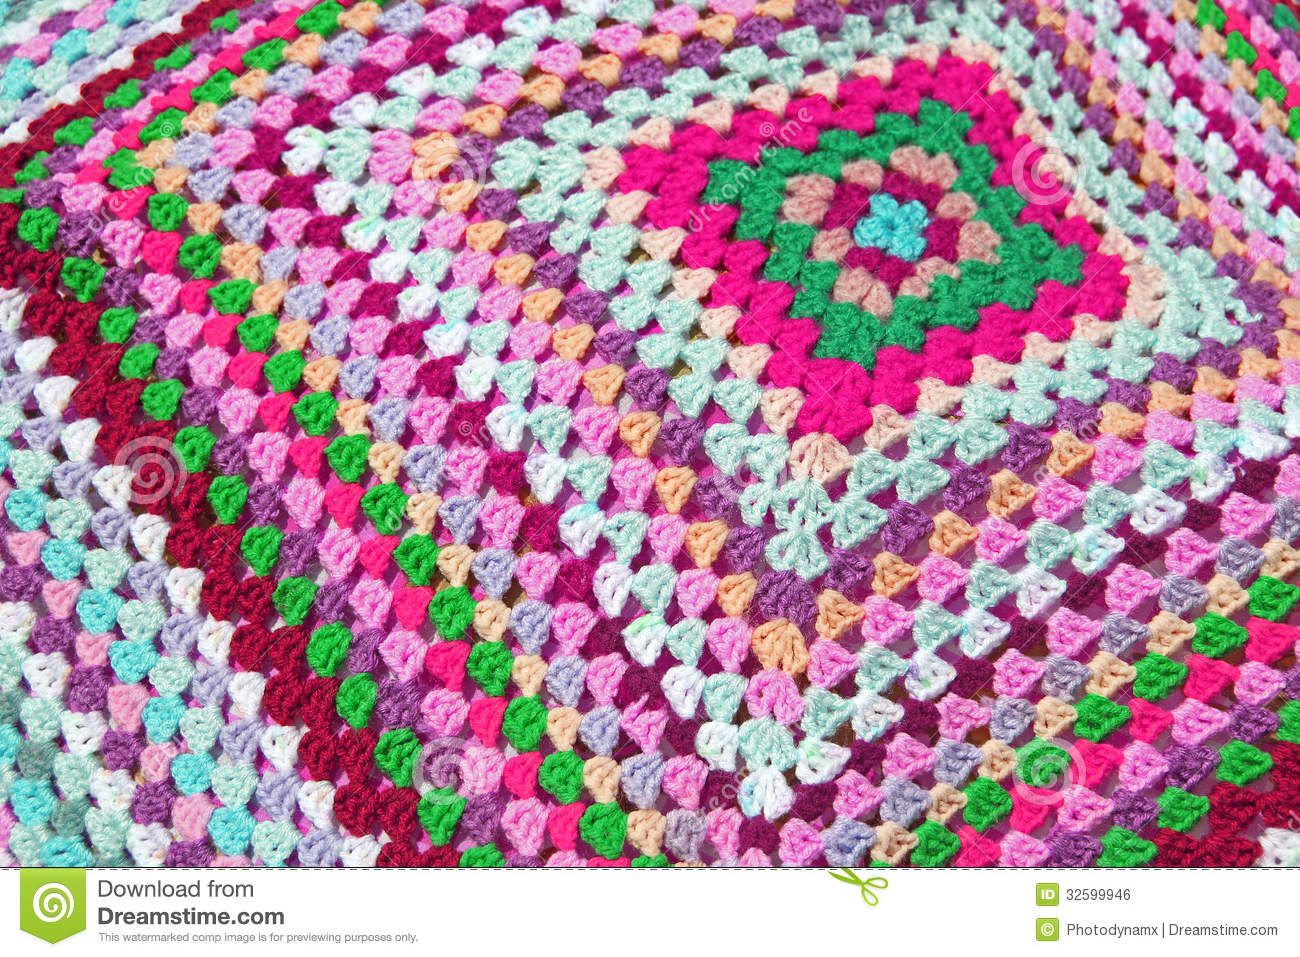 Patchwork knitted blanket stock photo. Image of colourful - 32599946